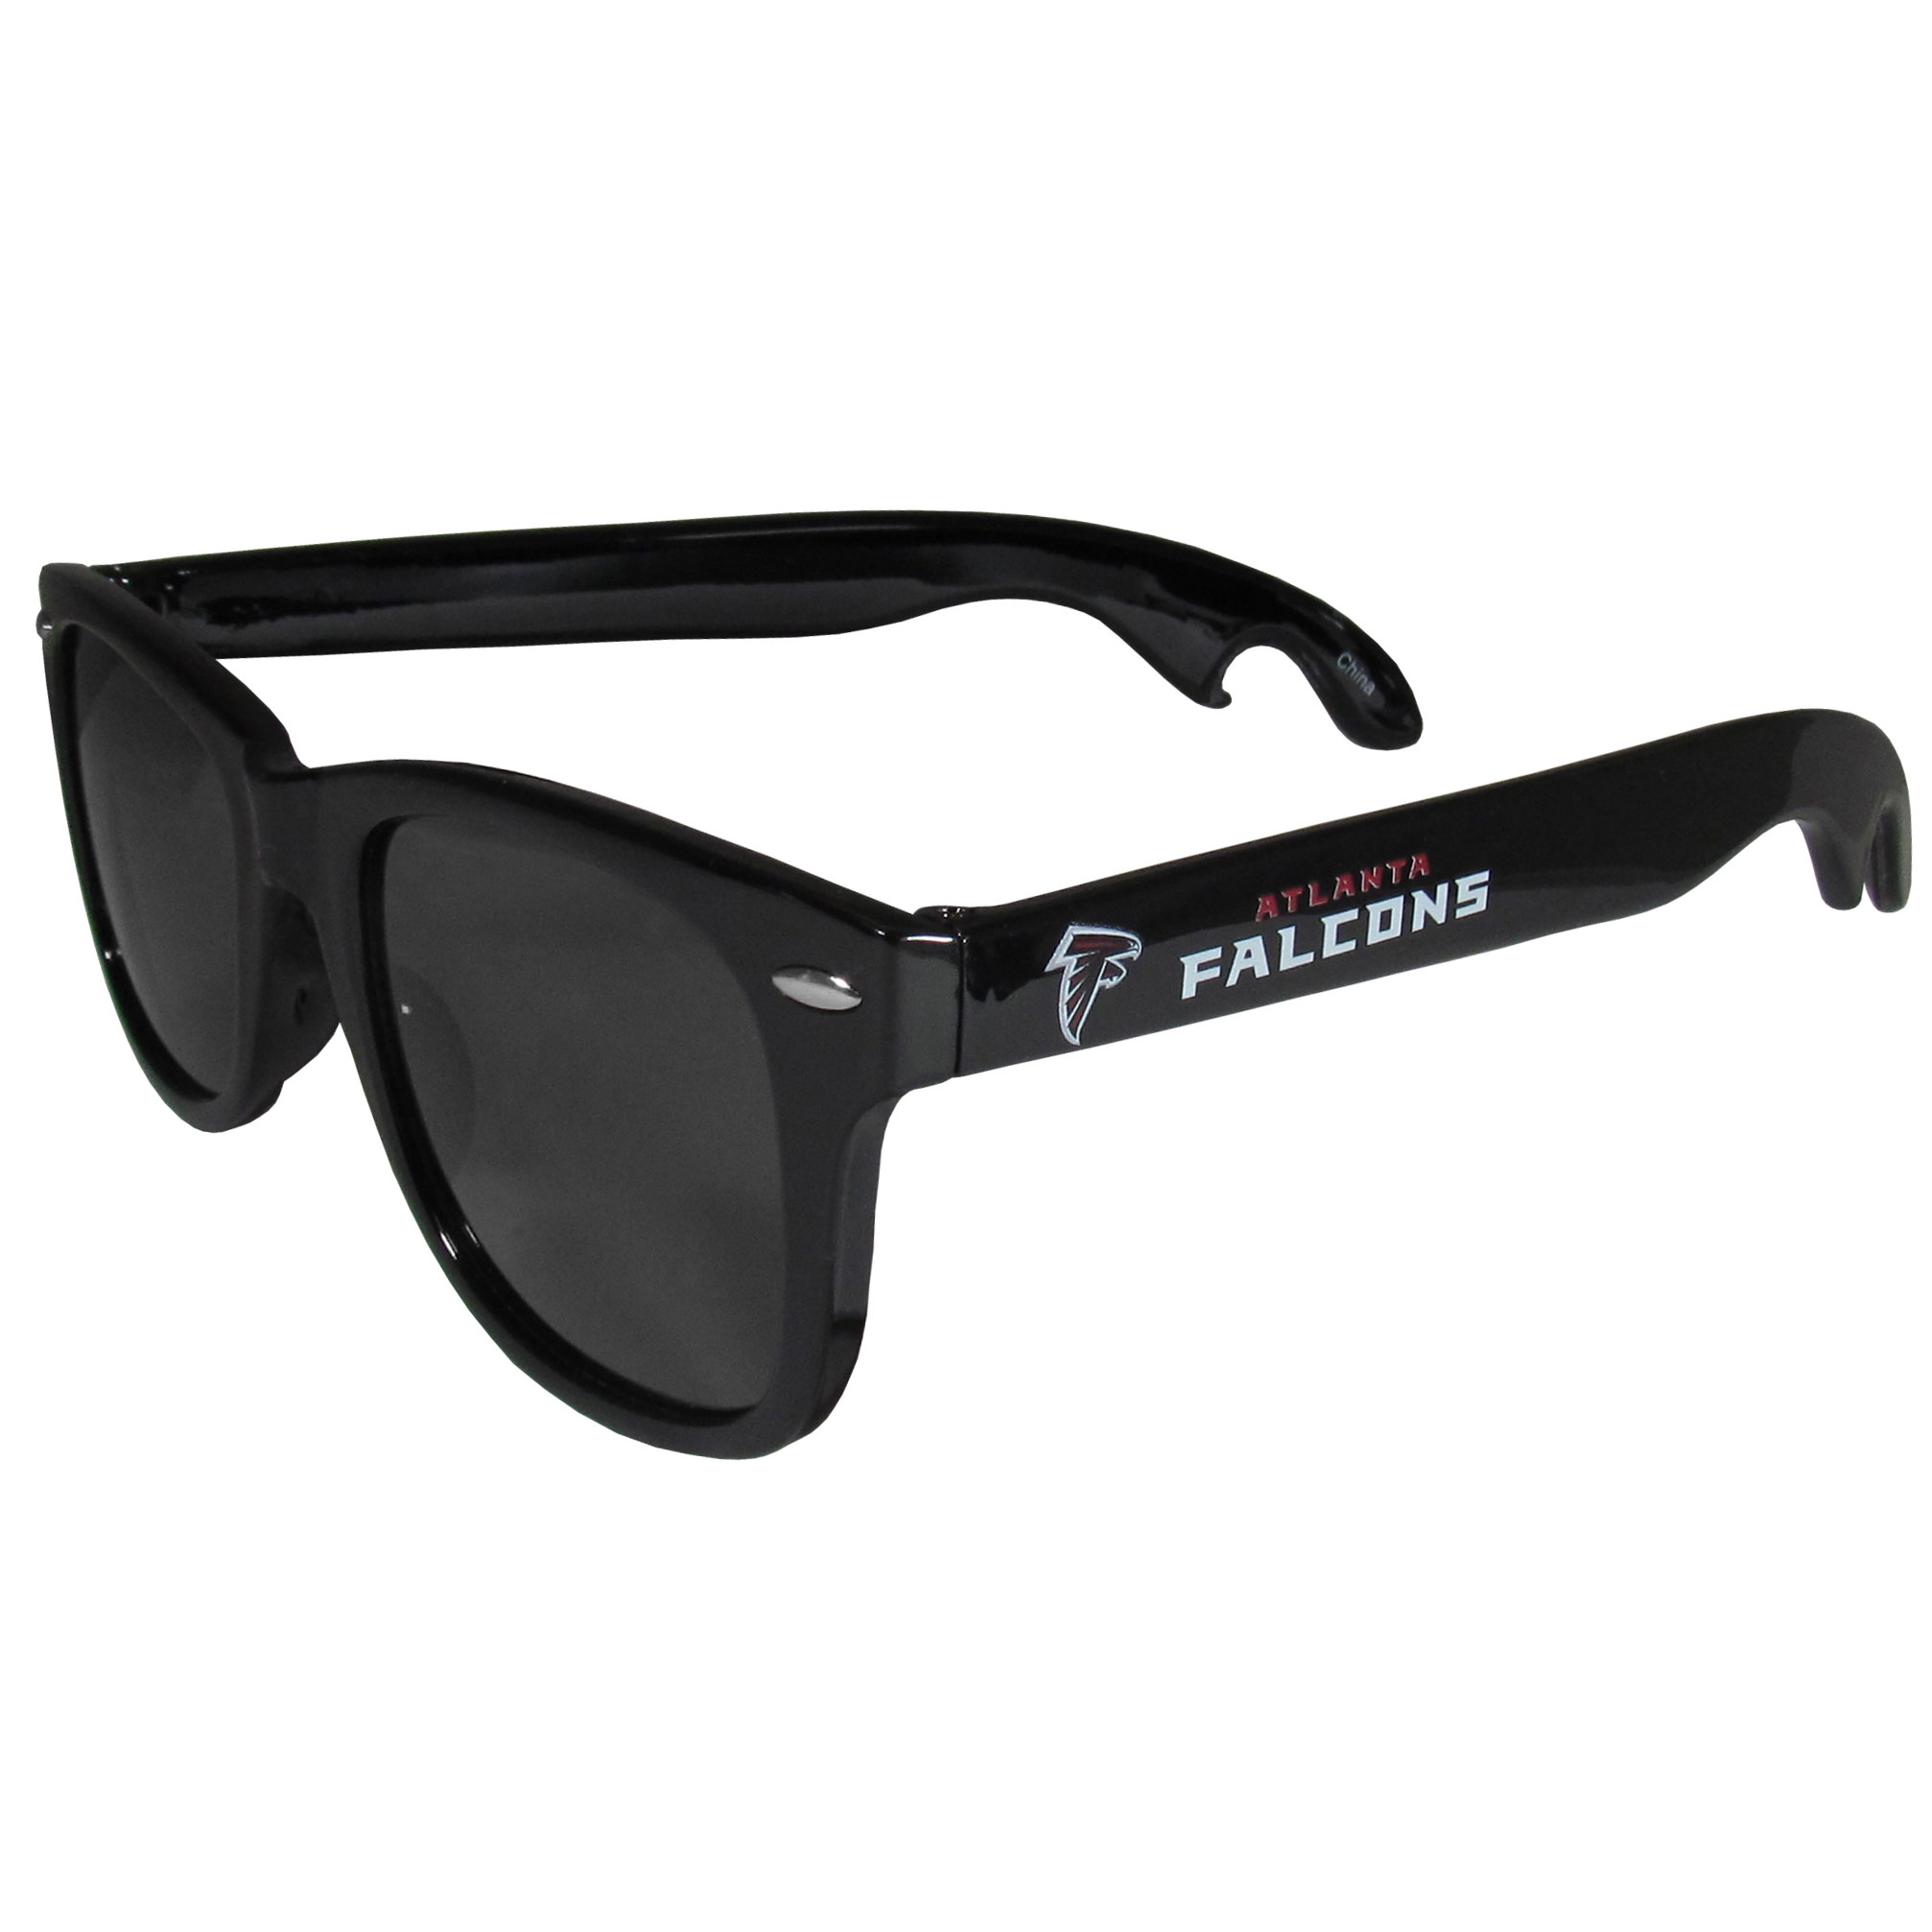 Atlanta Falcons Beachfarer Bottle Opener Sunglasses - Seriously, these sunglasses open bottles! Keep the party going with these amazing Atlanta Falcons bottle opener sunglasses. The stylish retro frames feature team designs on the arms and functional bottle openers on the end of the arms. Whether you are at the beach or having a backyard BBQ on game day, these shades will keep your eyes protected with 100% UVA/UVB protection and keep you hydrated with the handy bottle opener arms.